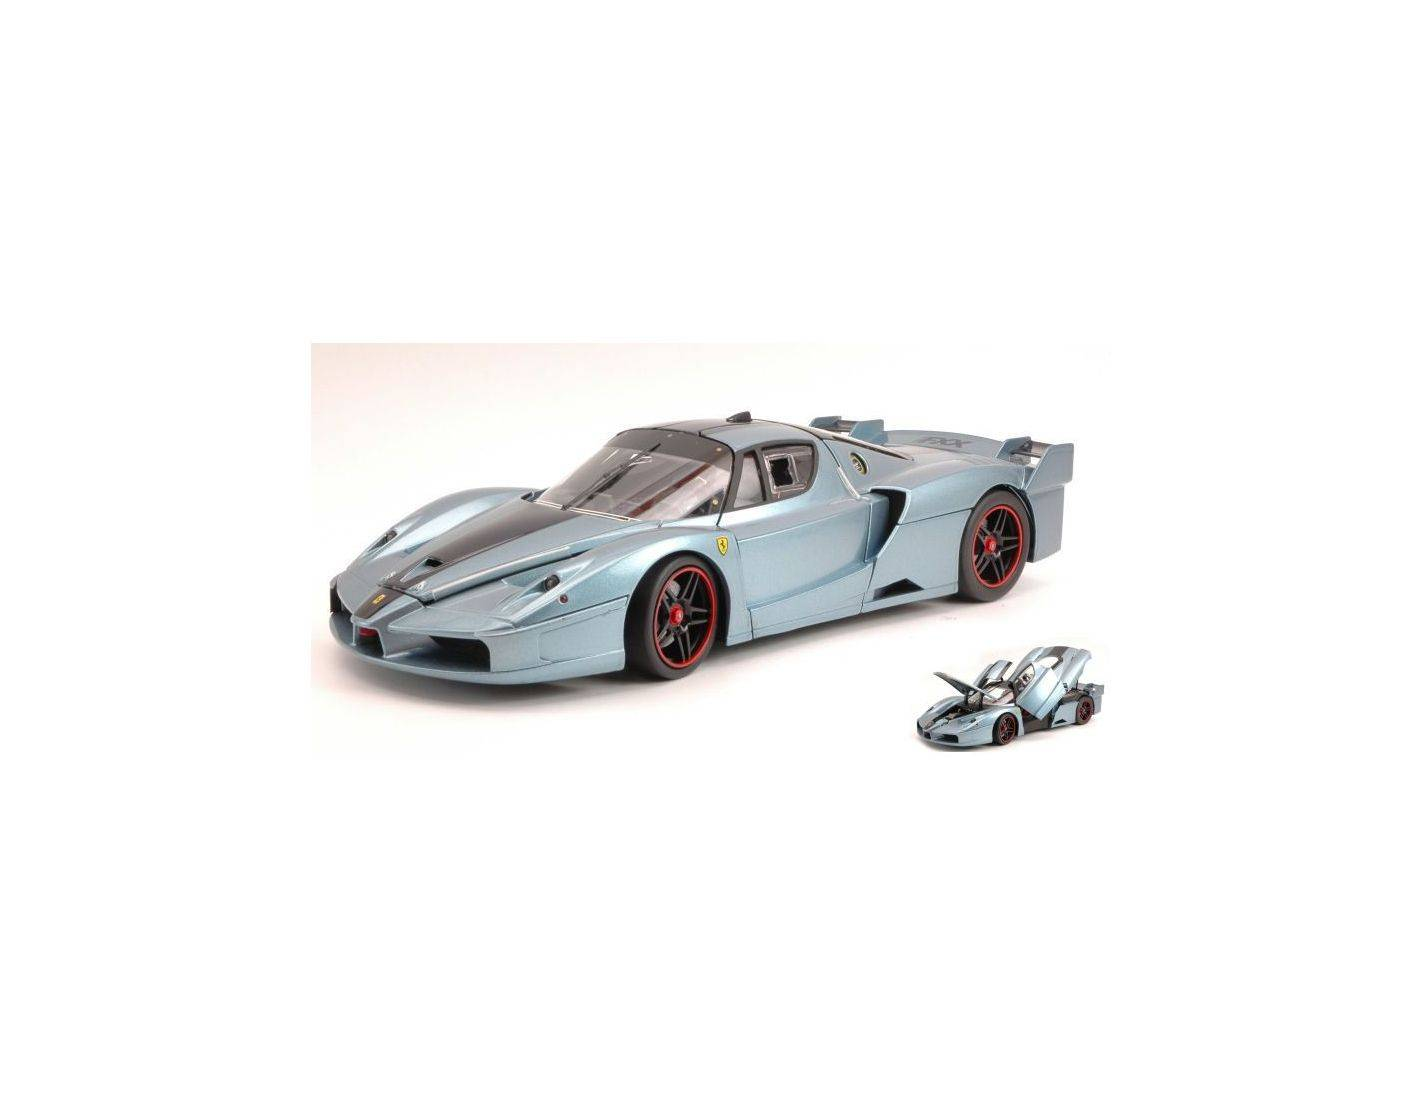 Hot Wheels Elite HWN2065 FERRARI FXX DUE TONI 1:18 Modellino